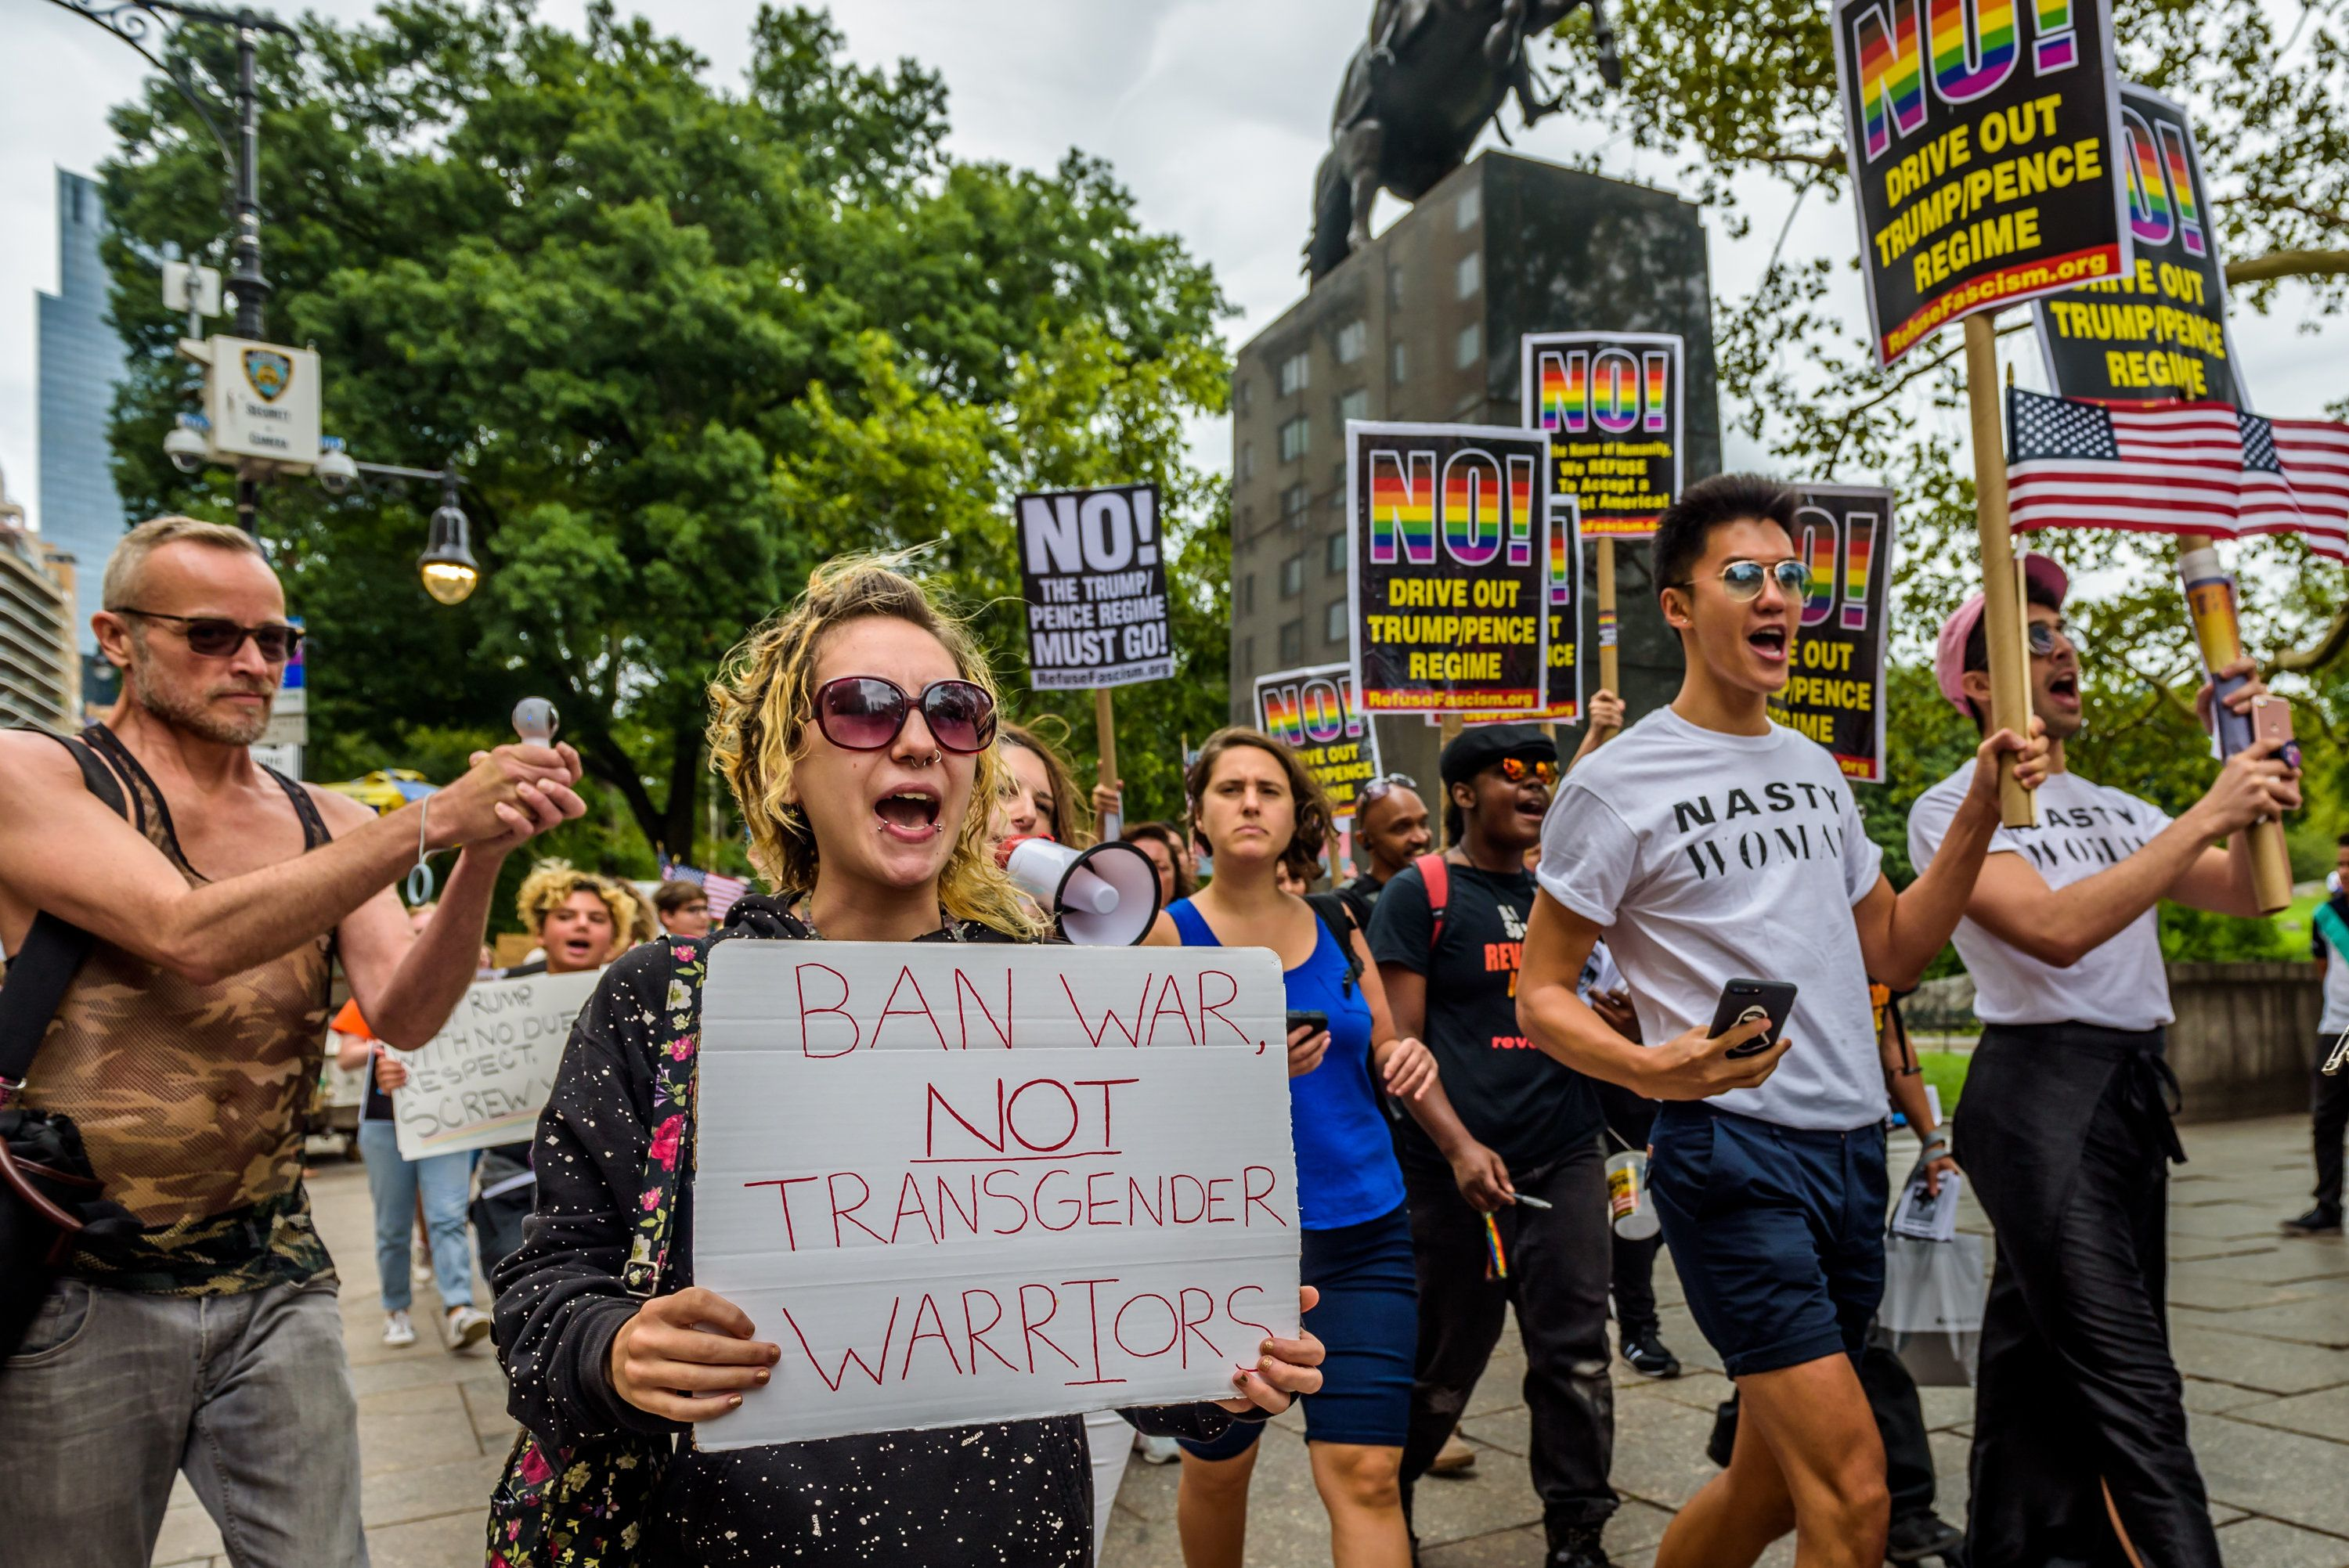 COLUMBUS CIRCLE, NEW YORK, UNITED STATES - 2017/07/29: A group of New Yorkers gathered at Columbus Circle across the Trump International Hotel and Tower New York in Central Park to raise their voices in protest against discrimination towards the LGBT community, in the aftermath of the Trump/Pence regime decision to ban transgender people from serving in the U.S. military. (Photo by Erik McGregor/Pacific Press/LightRocket via Getty Images)